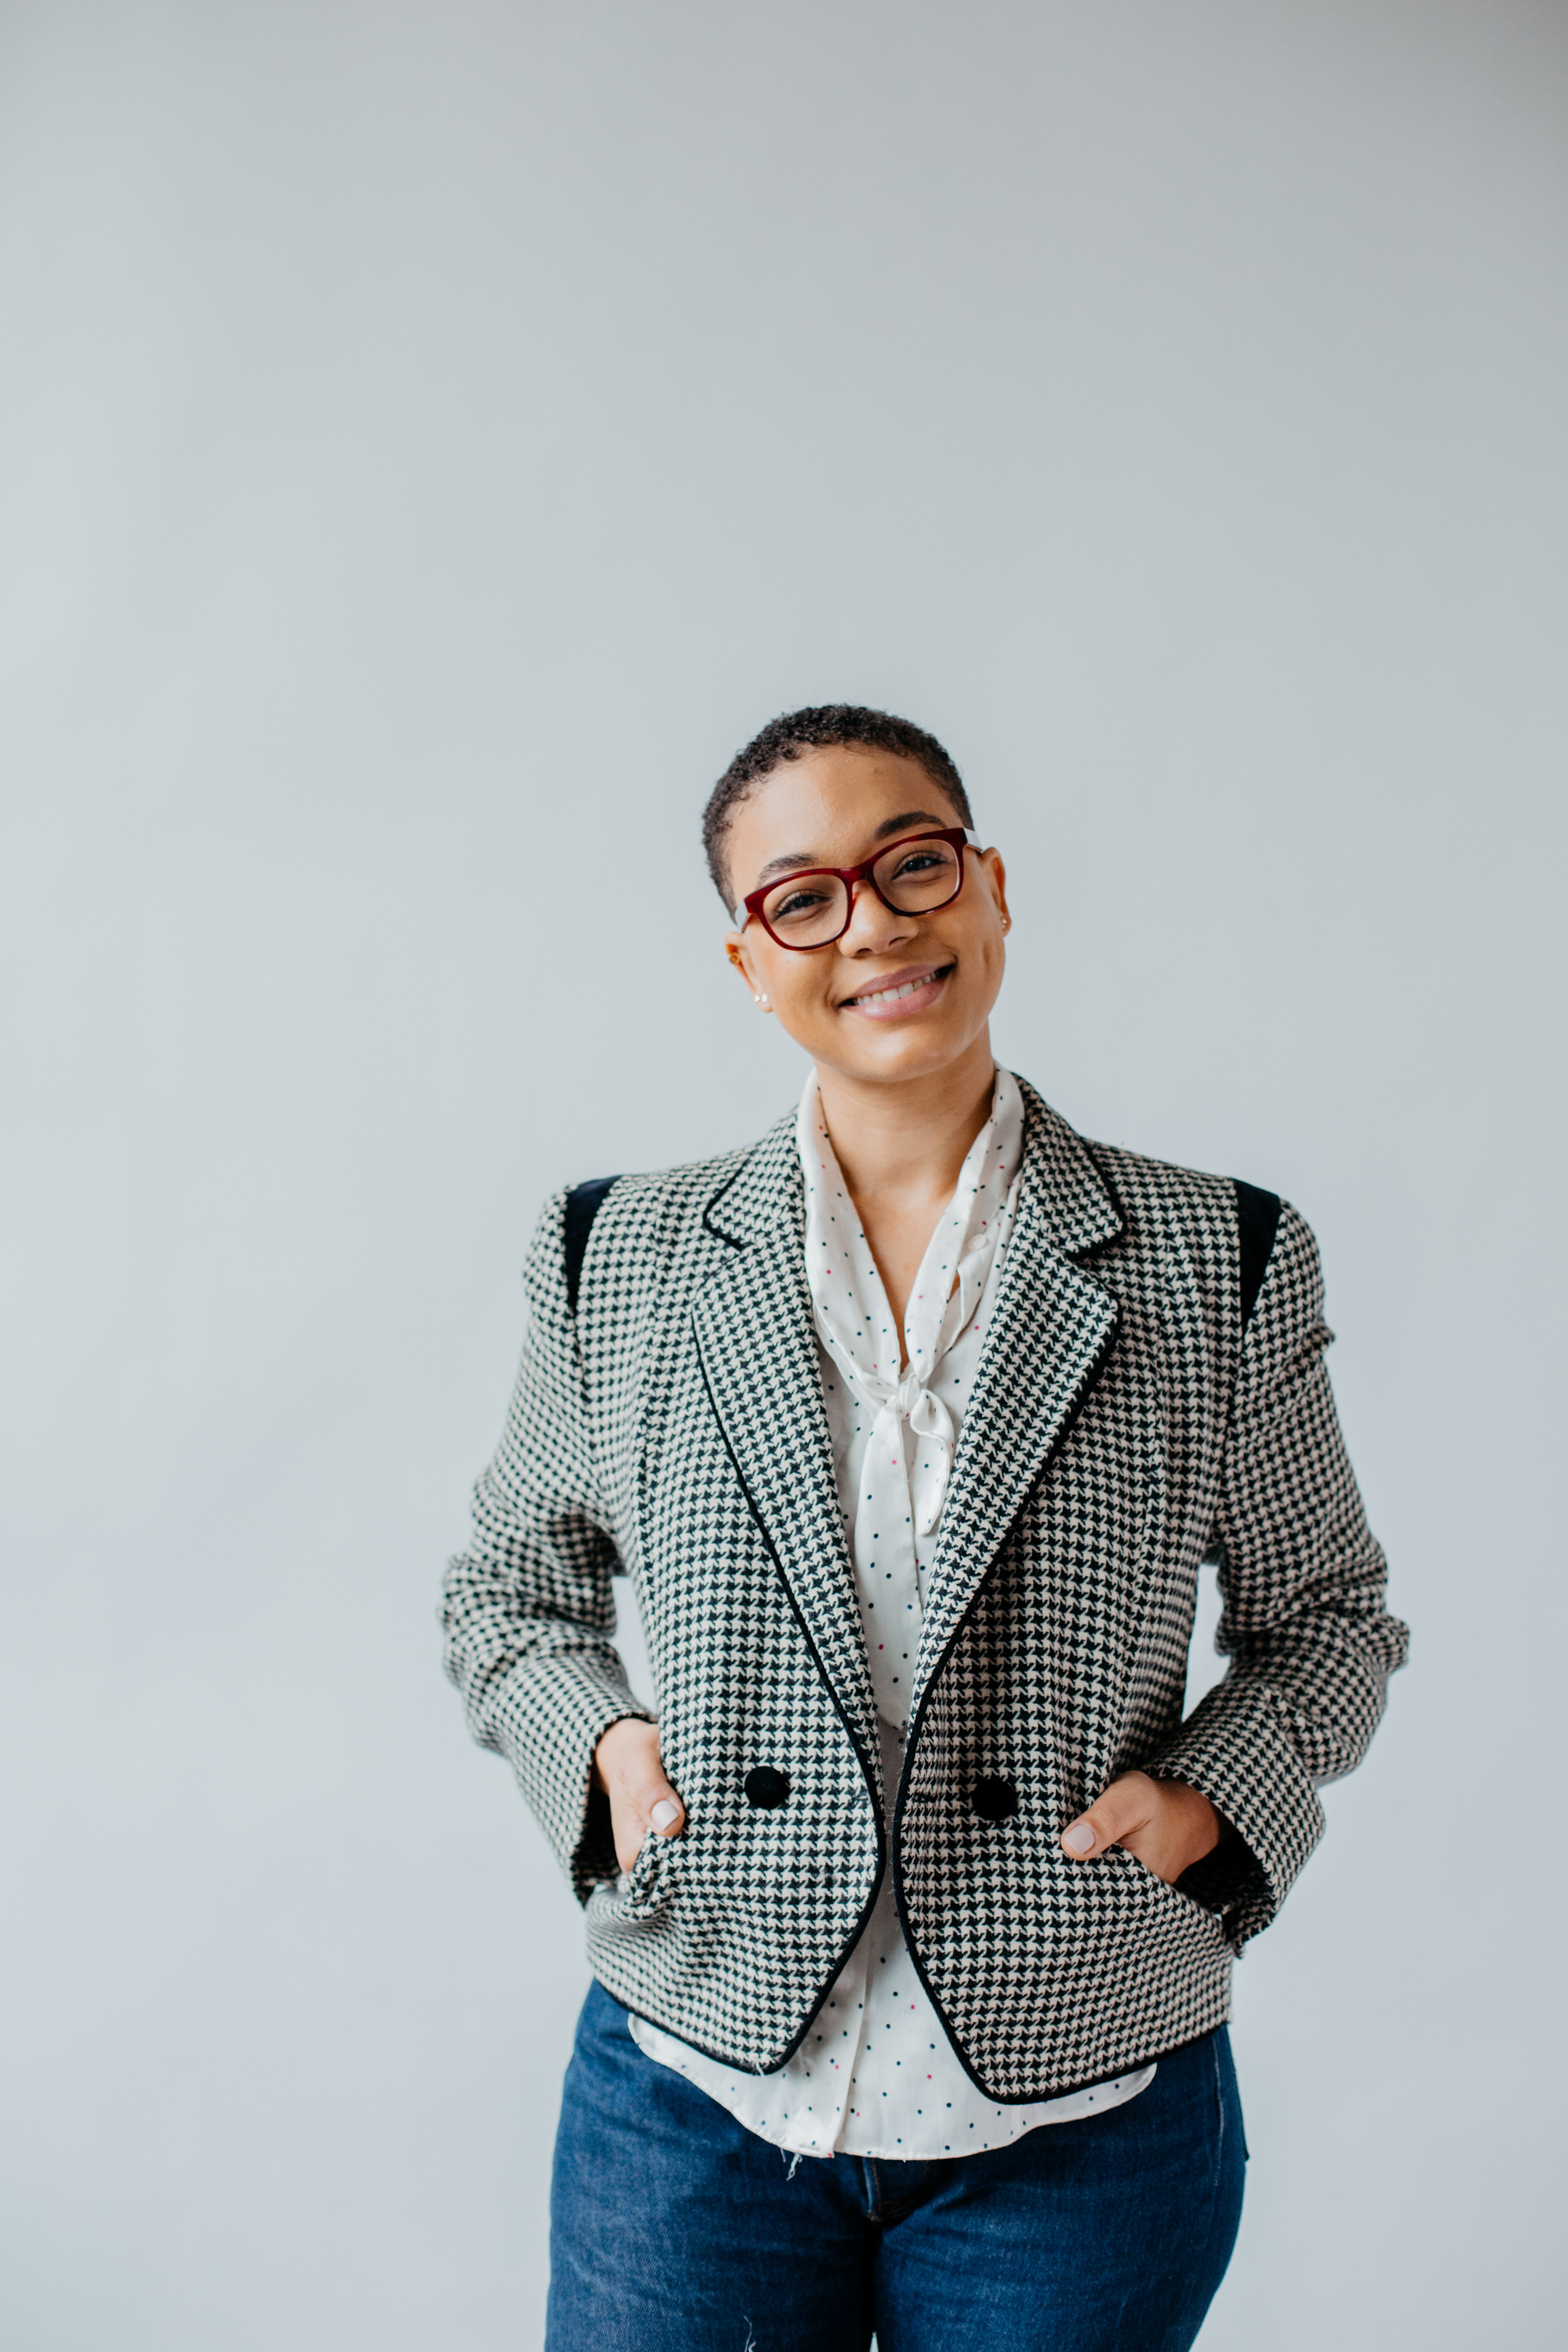 Myisa Plancq-Graham, is a published Photographer and Filmmaker based in Seattle with a profound love for visual storytelling and amplifying Black voices. She loves traveling and using her craft to empower and enrich her community. - Photo by Amina Maya